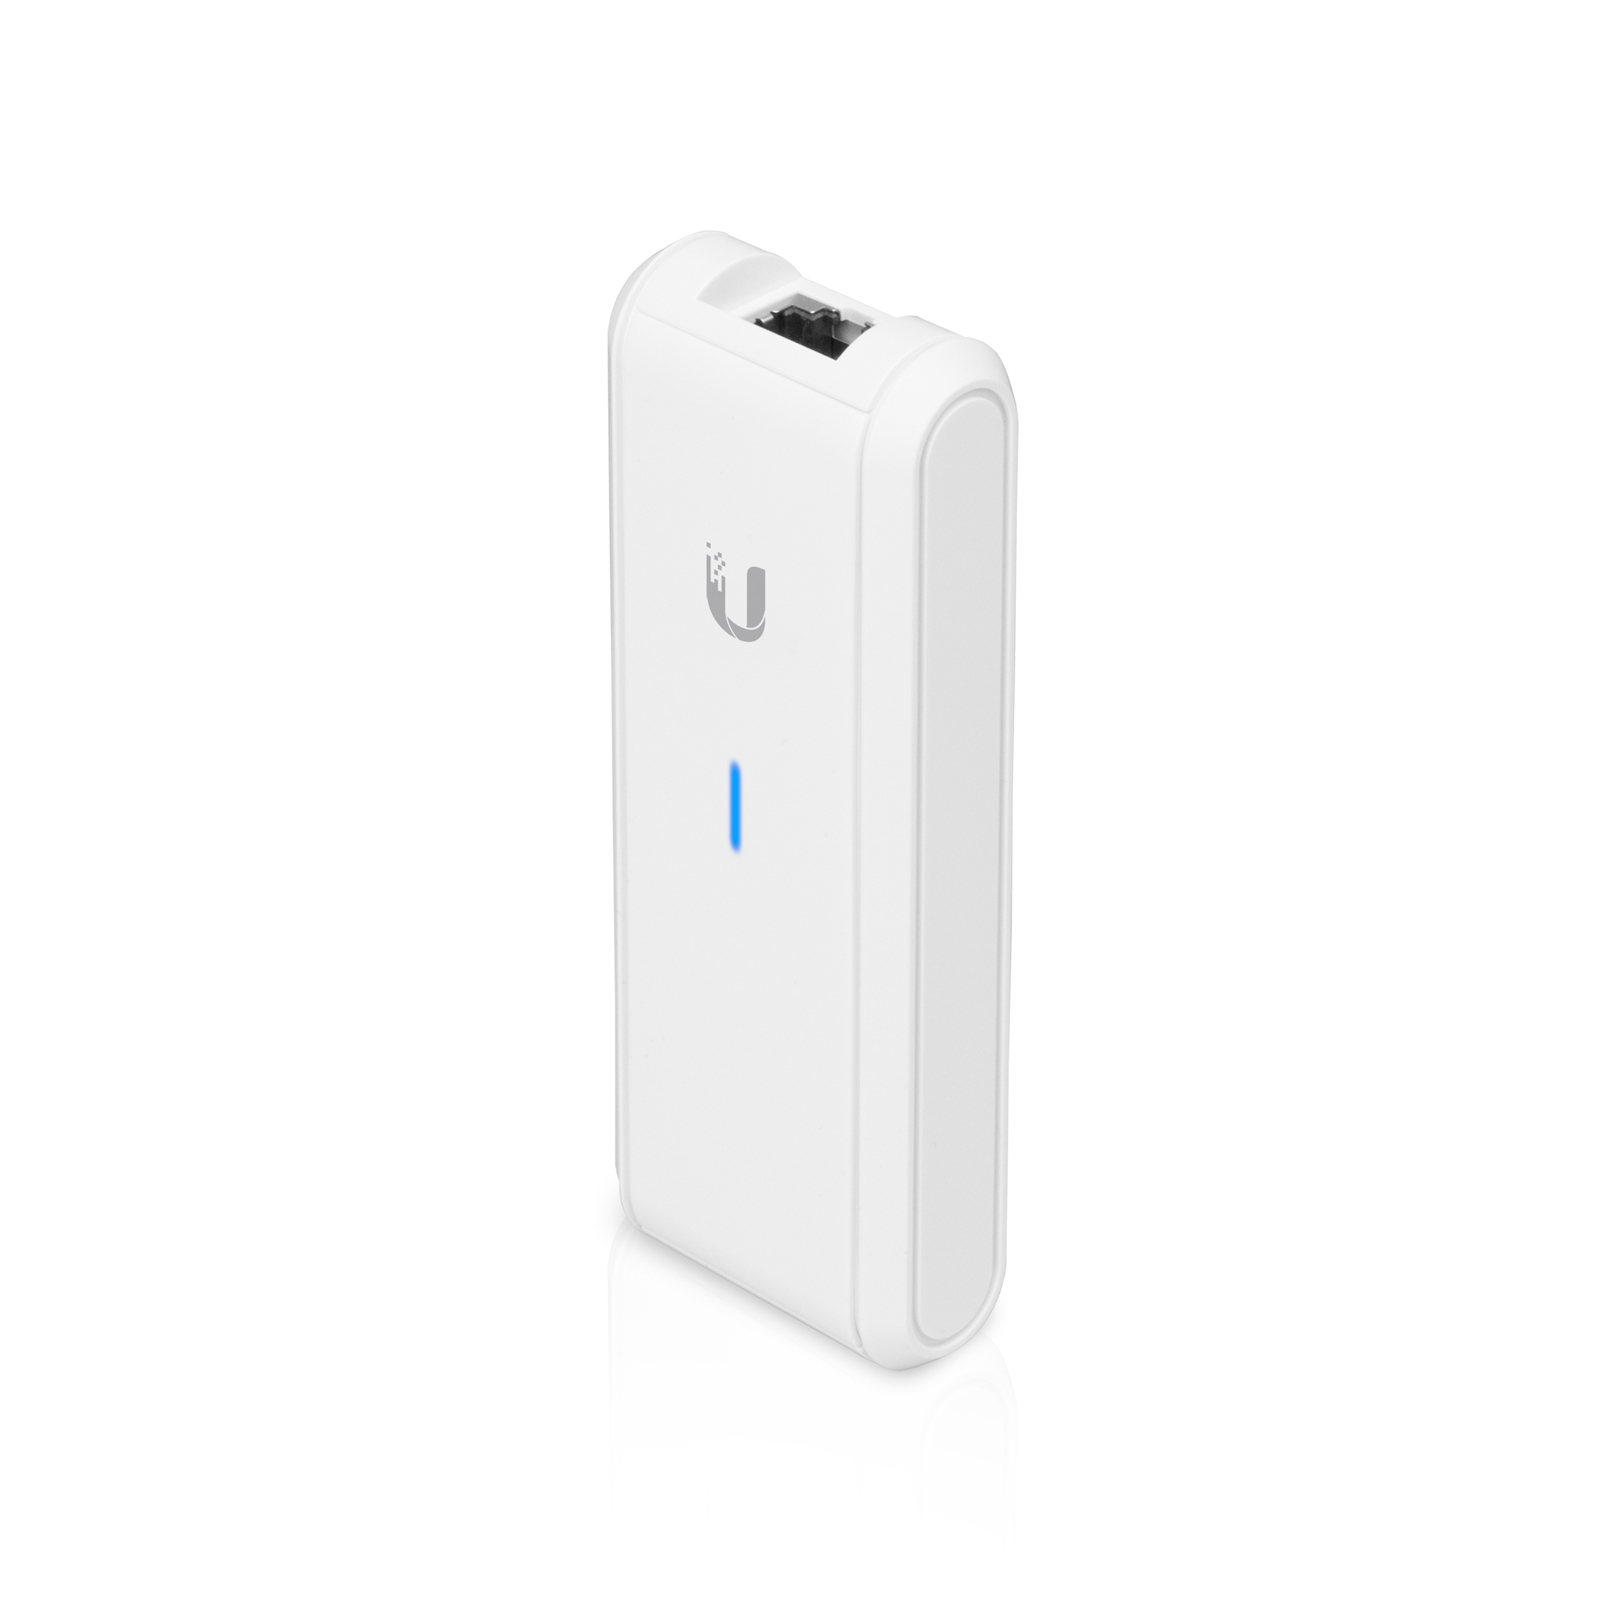 hp 560 access point configuration guide